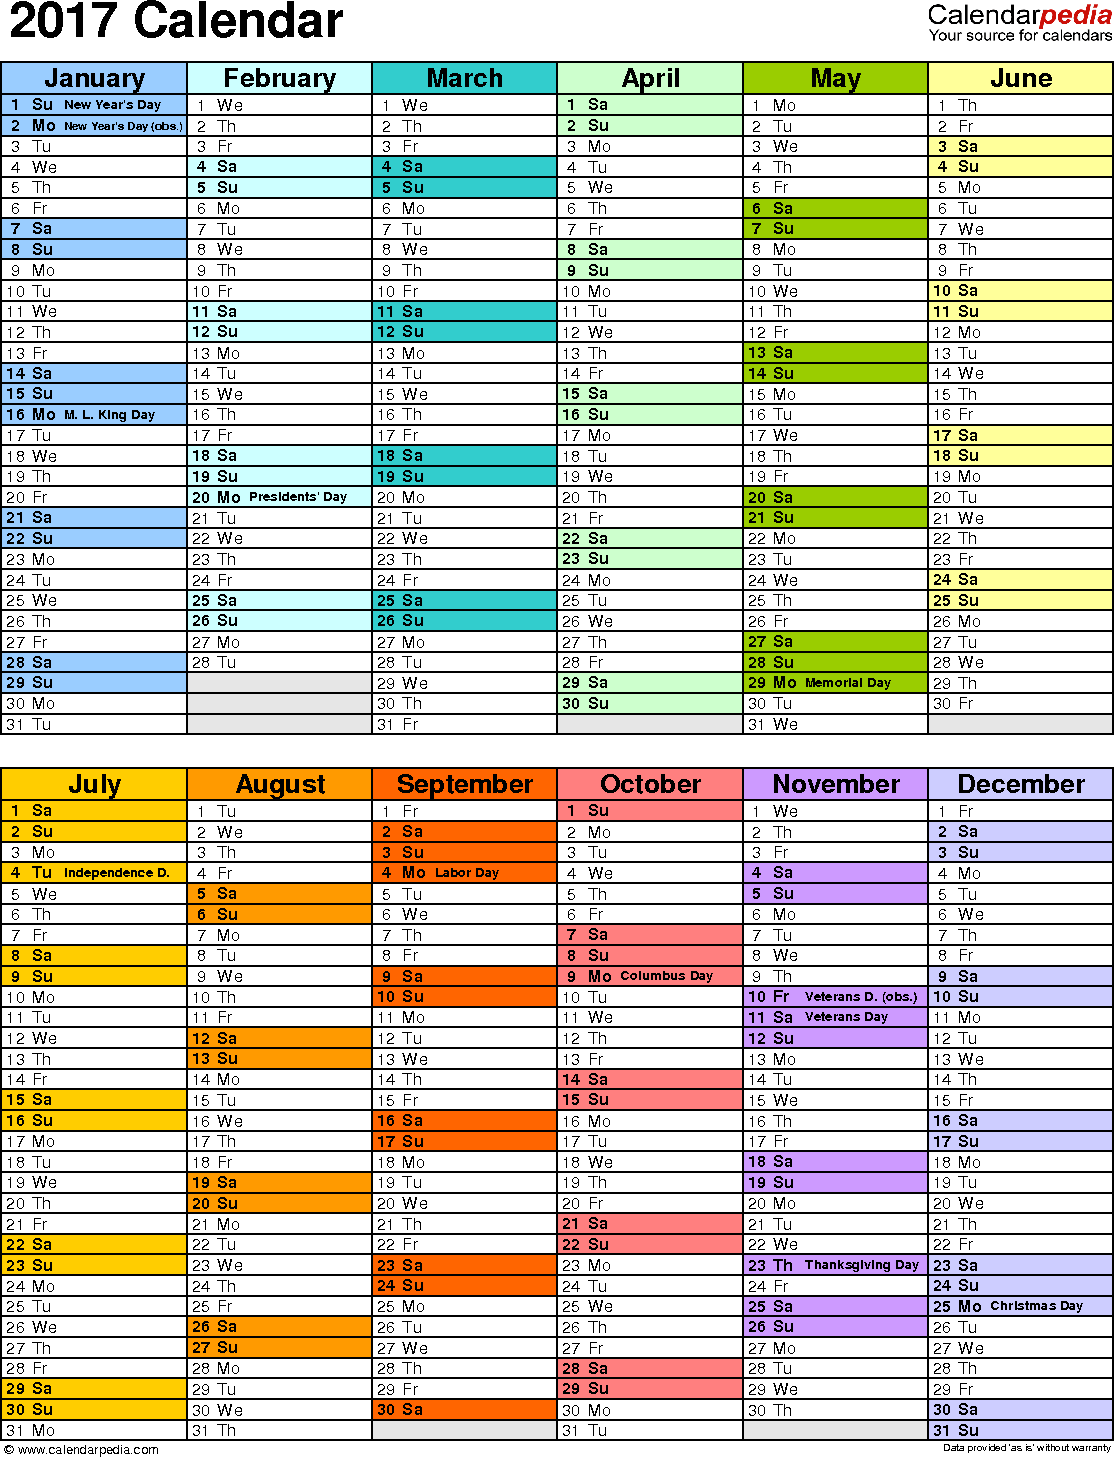 Year Planner · James Barlow